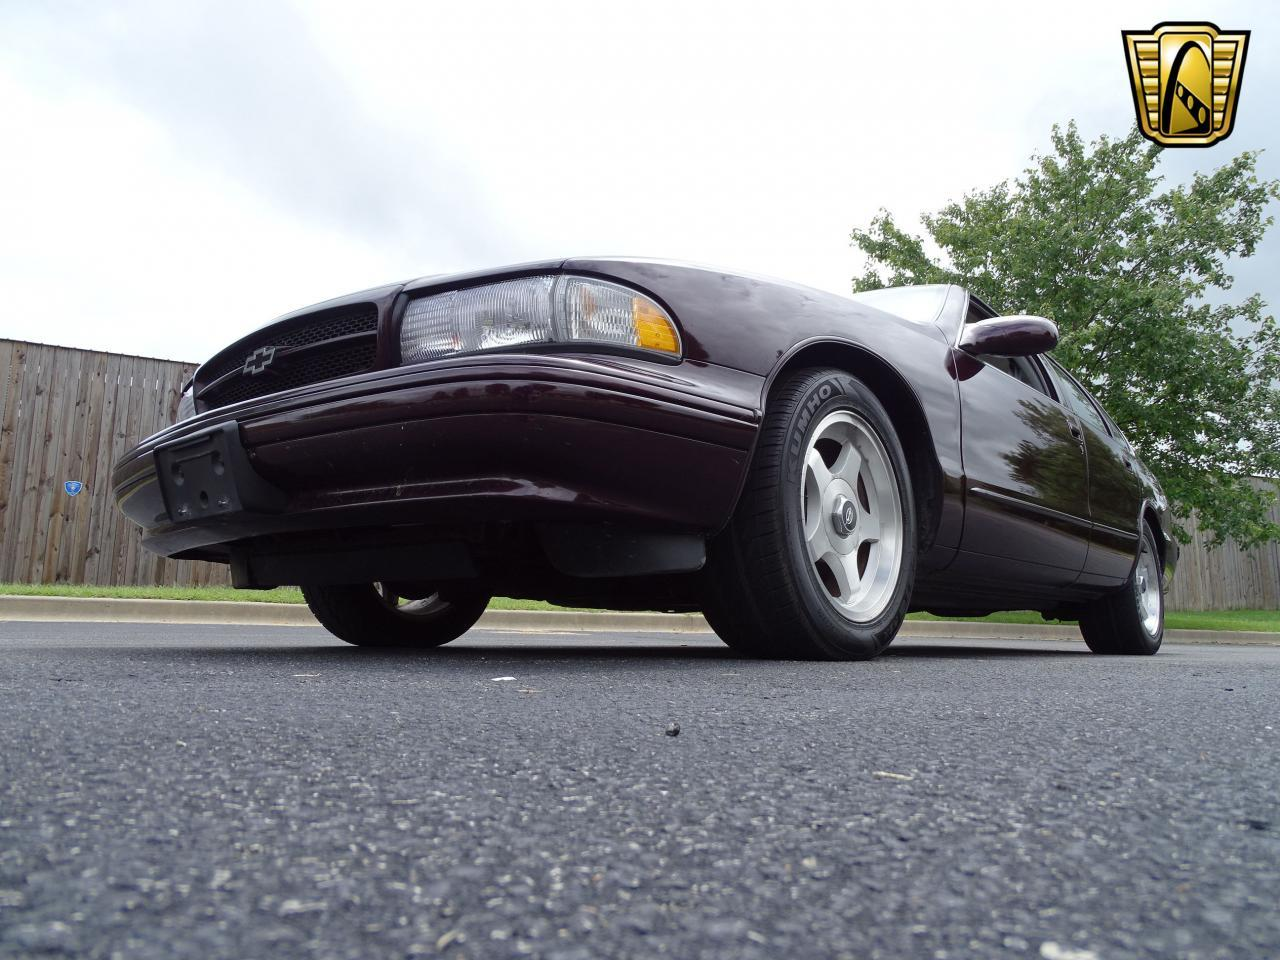 Large Picture of '96 Impala located in Illinois - $19,000.00 - QB5K